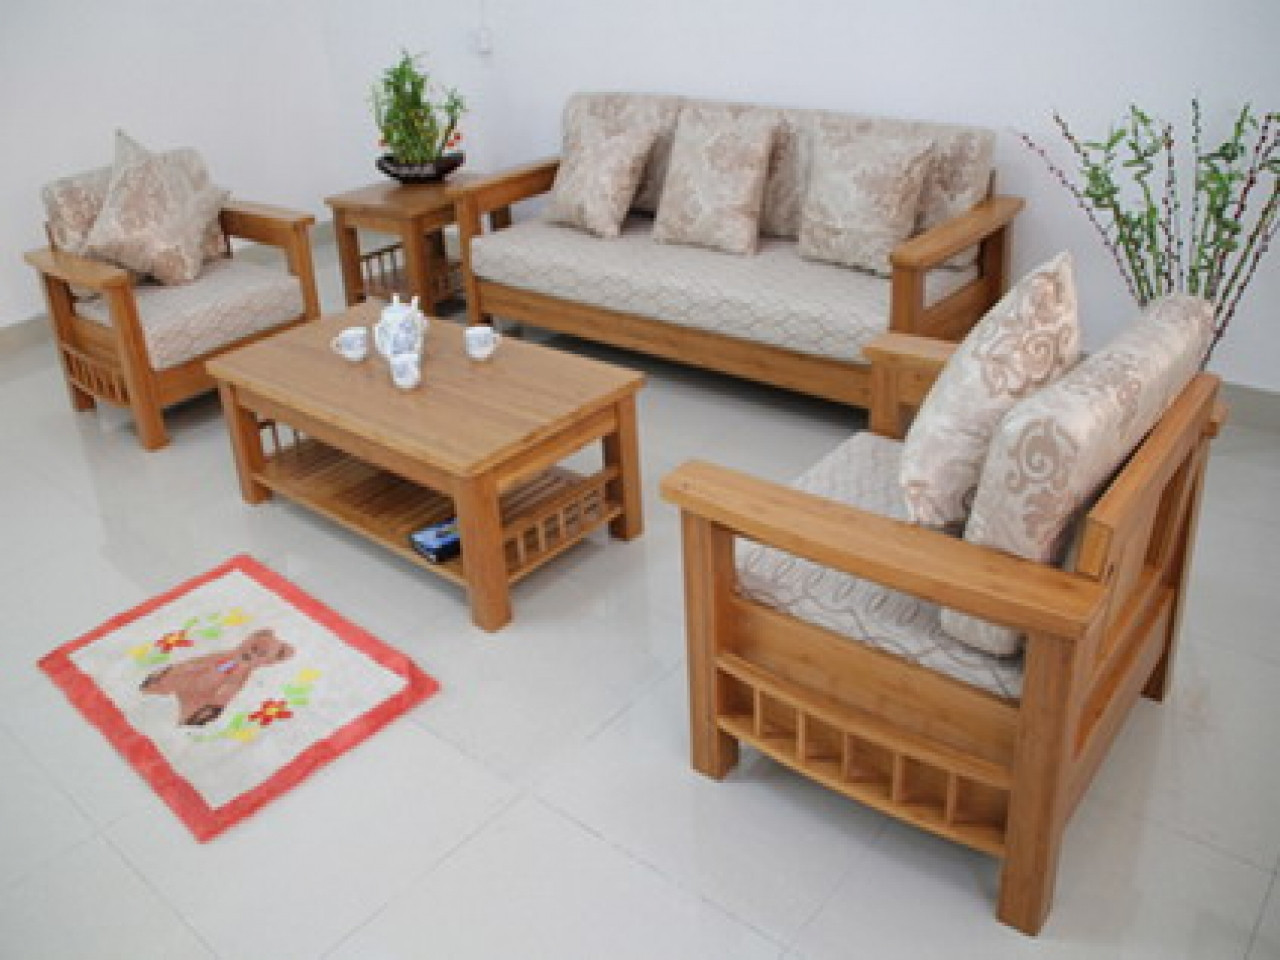 Best ideas about Sofa Set Designs For Small Living Room . Save or Pin American made dining room furniture wooden sofa sets Now.